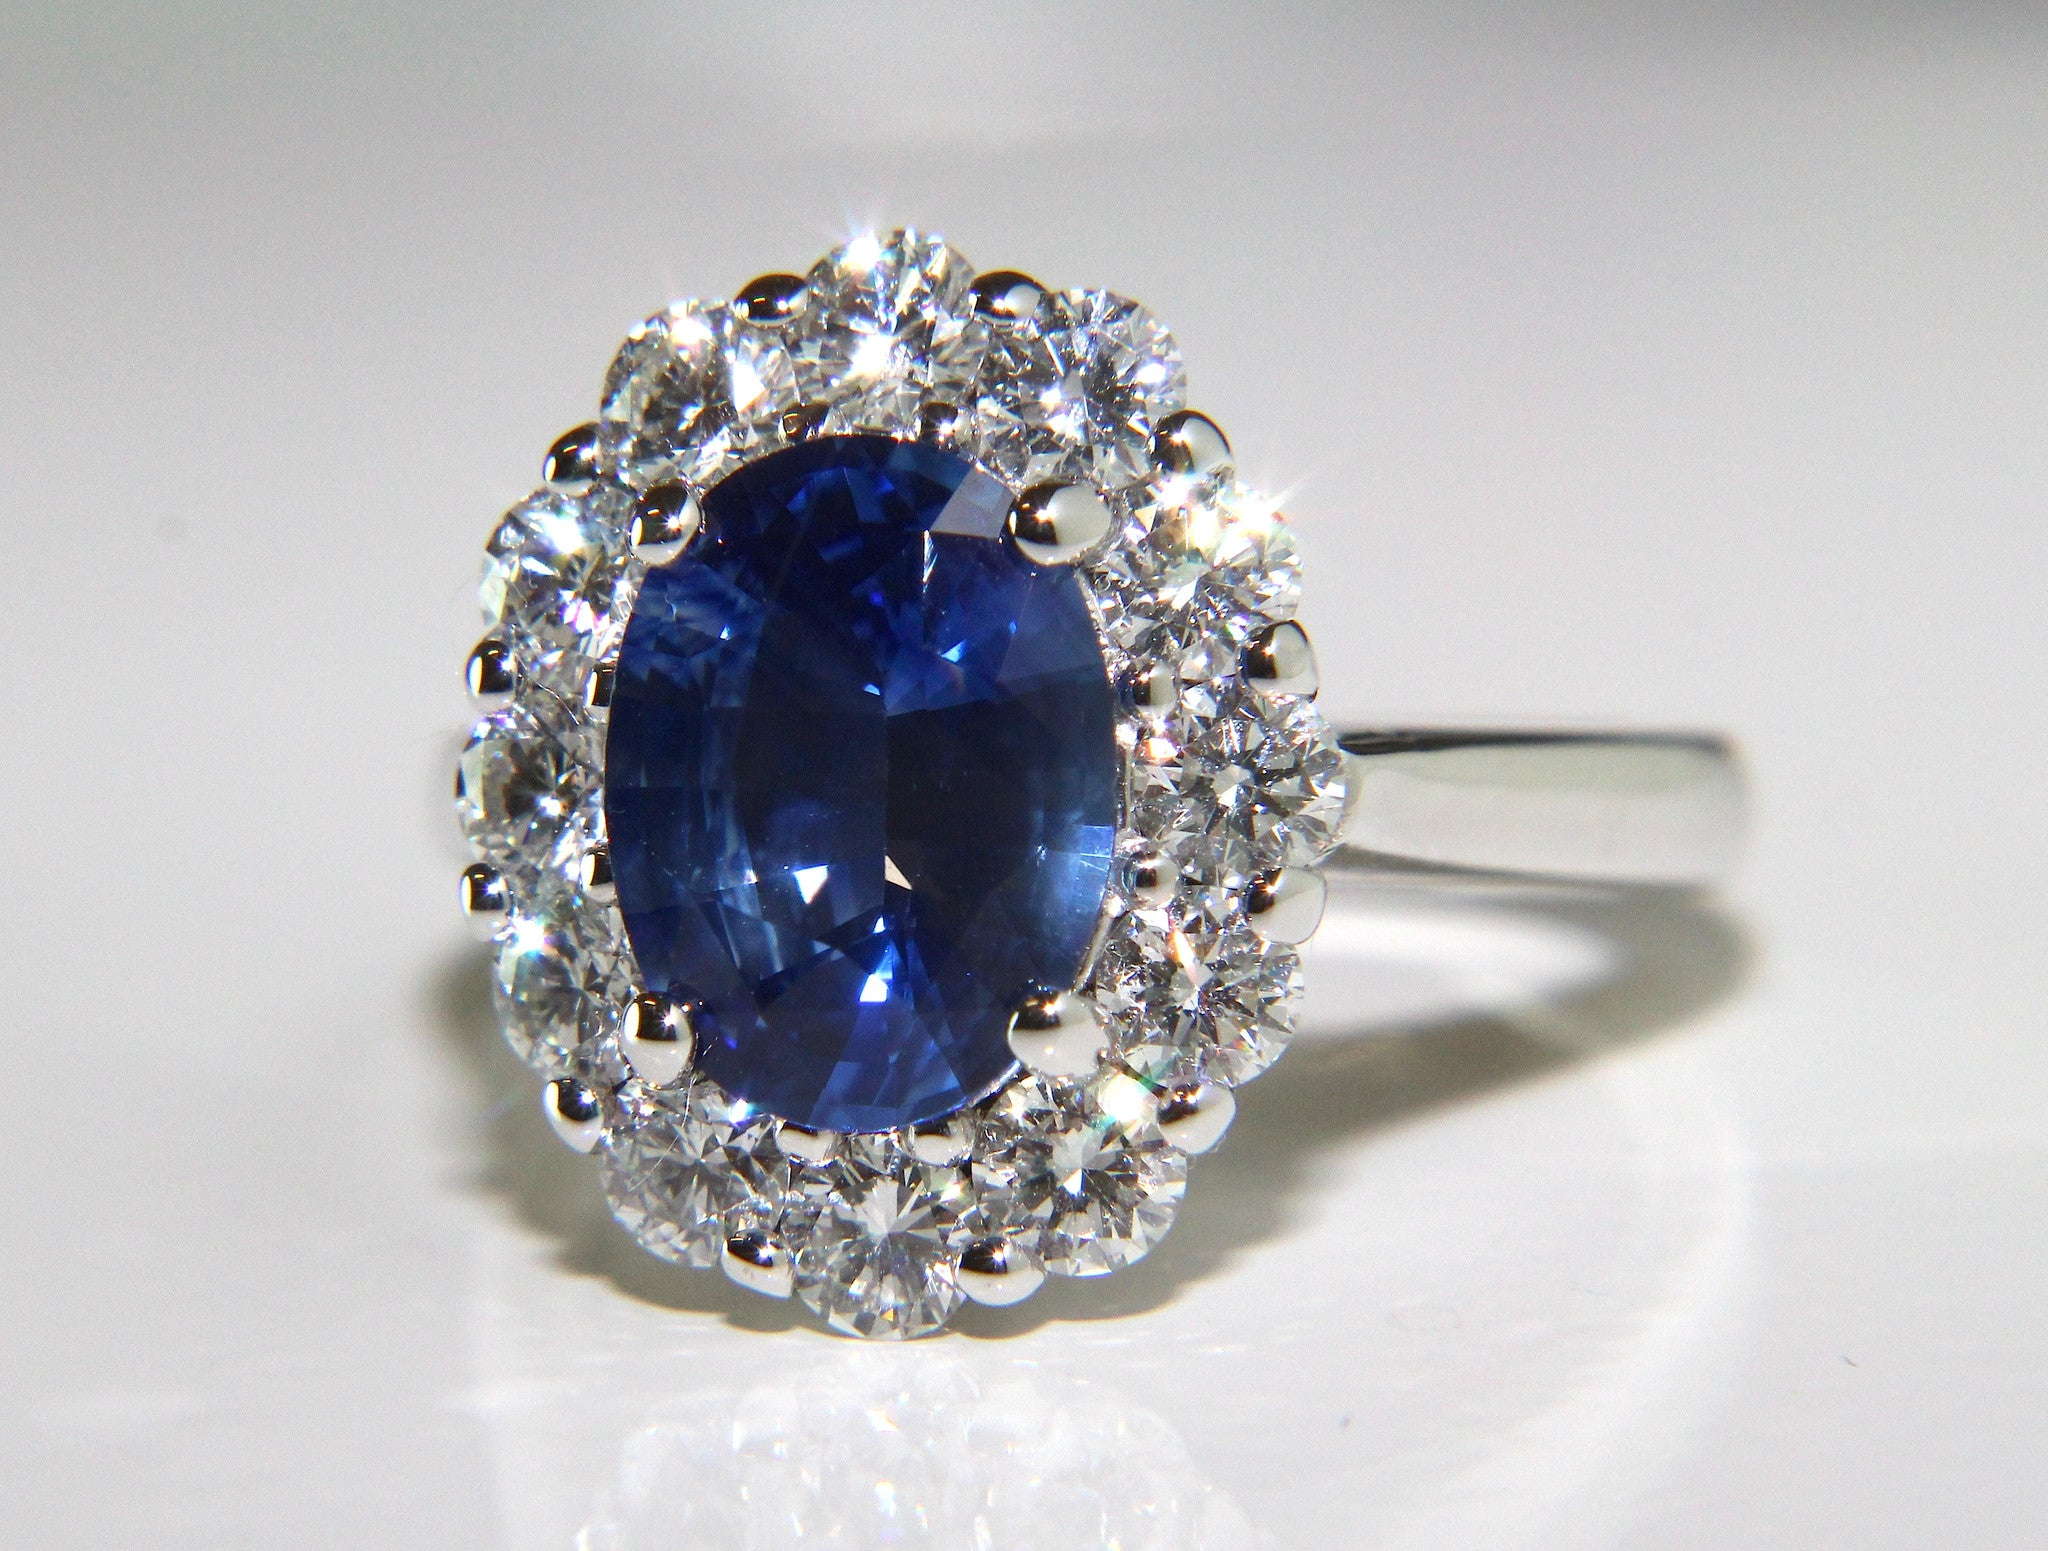 campbell oval blue sapphire diamond cluster engagement ring 4 39